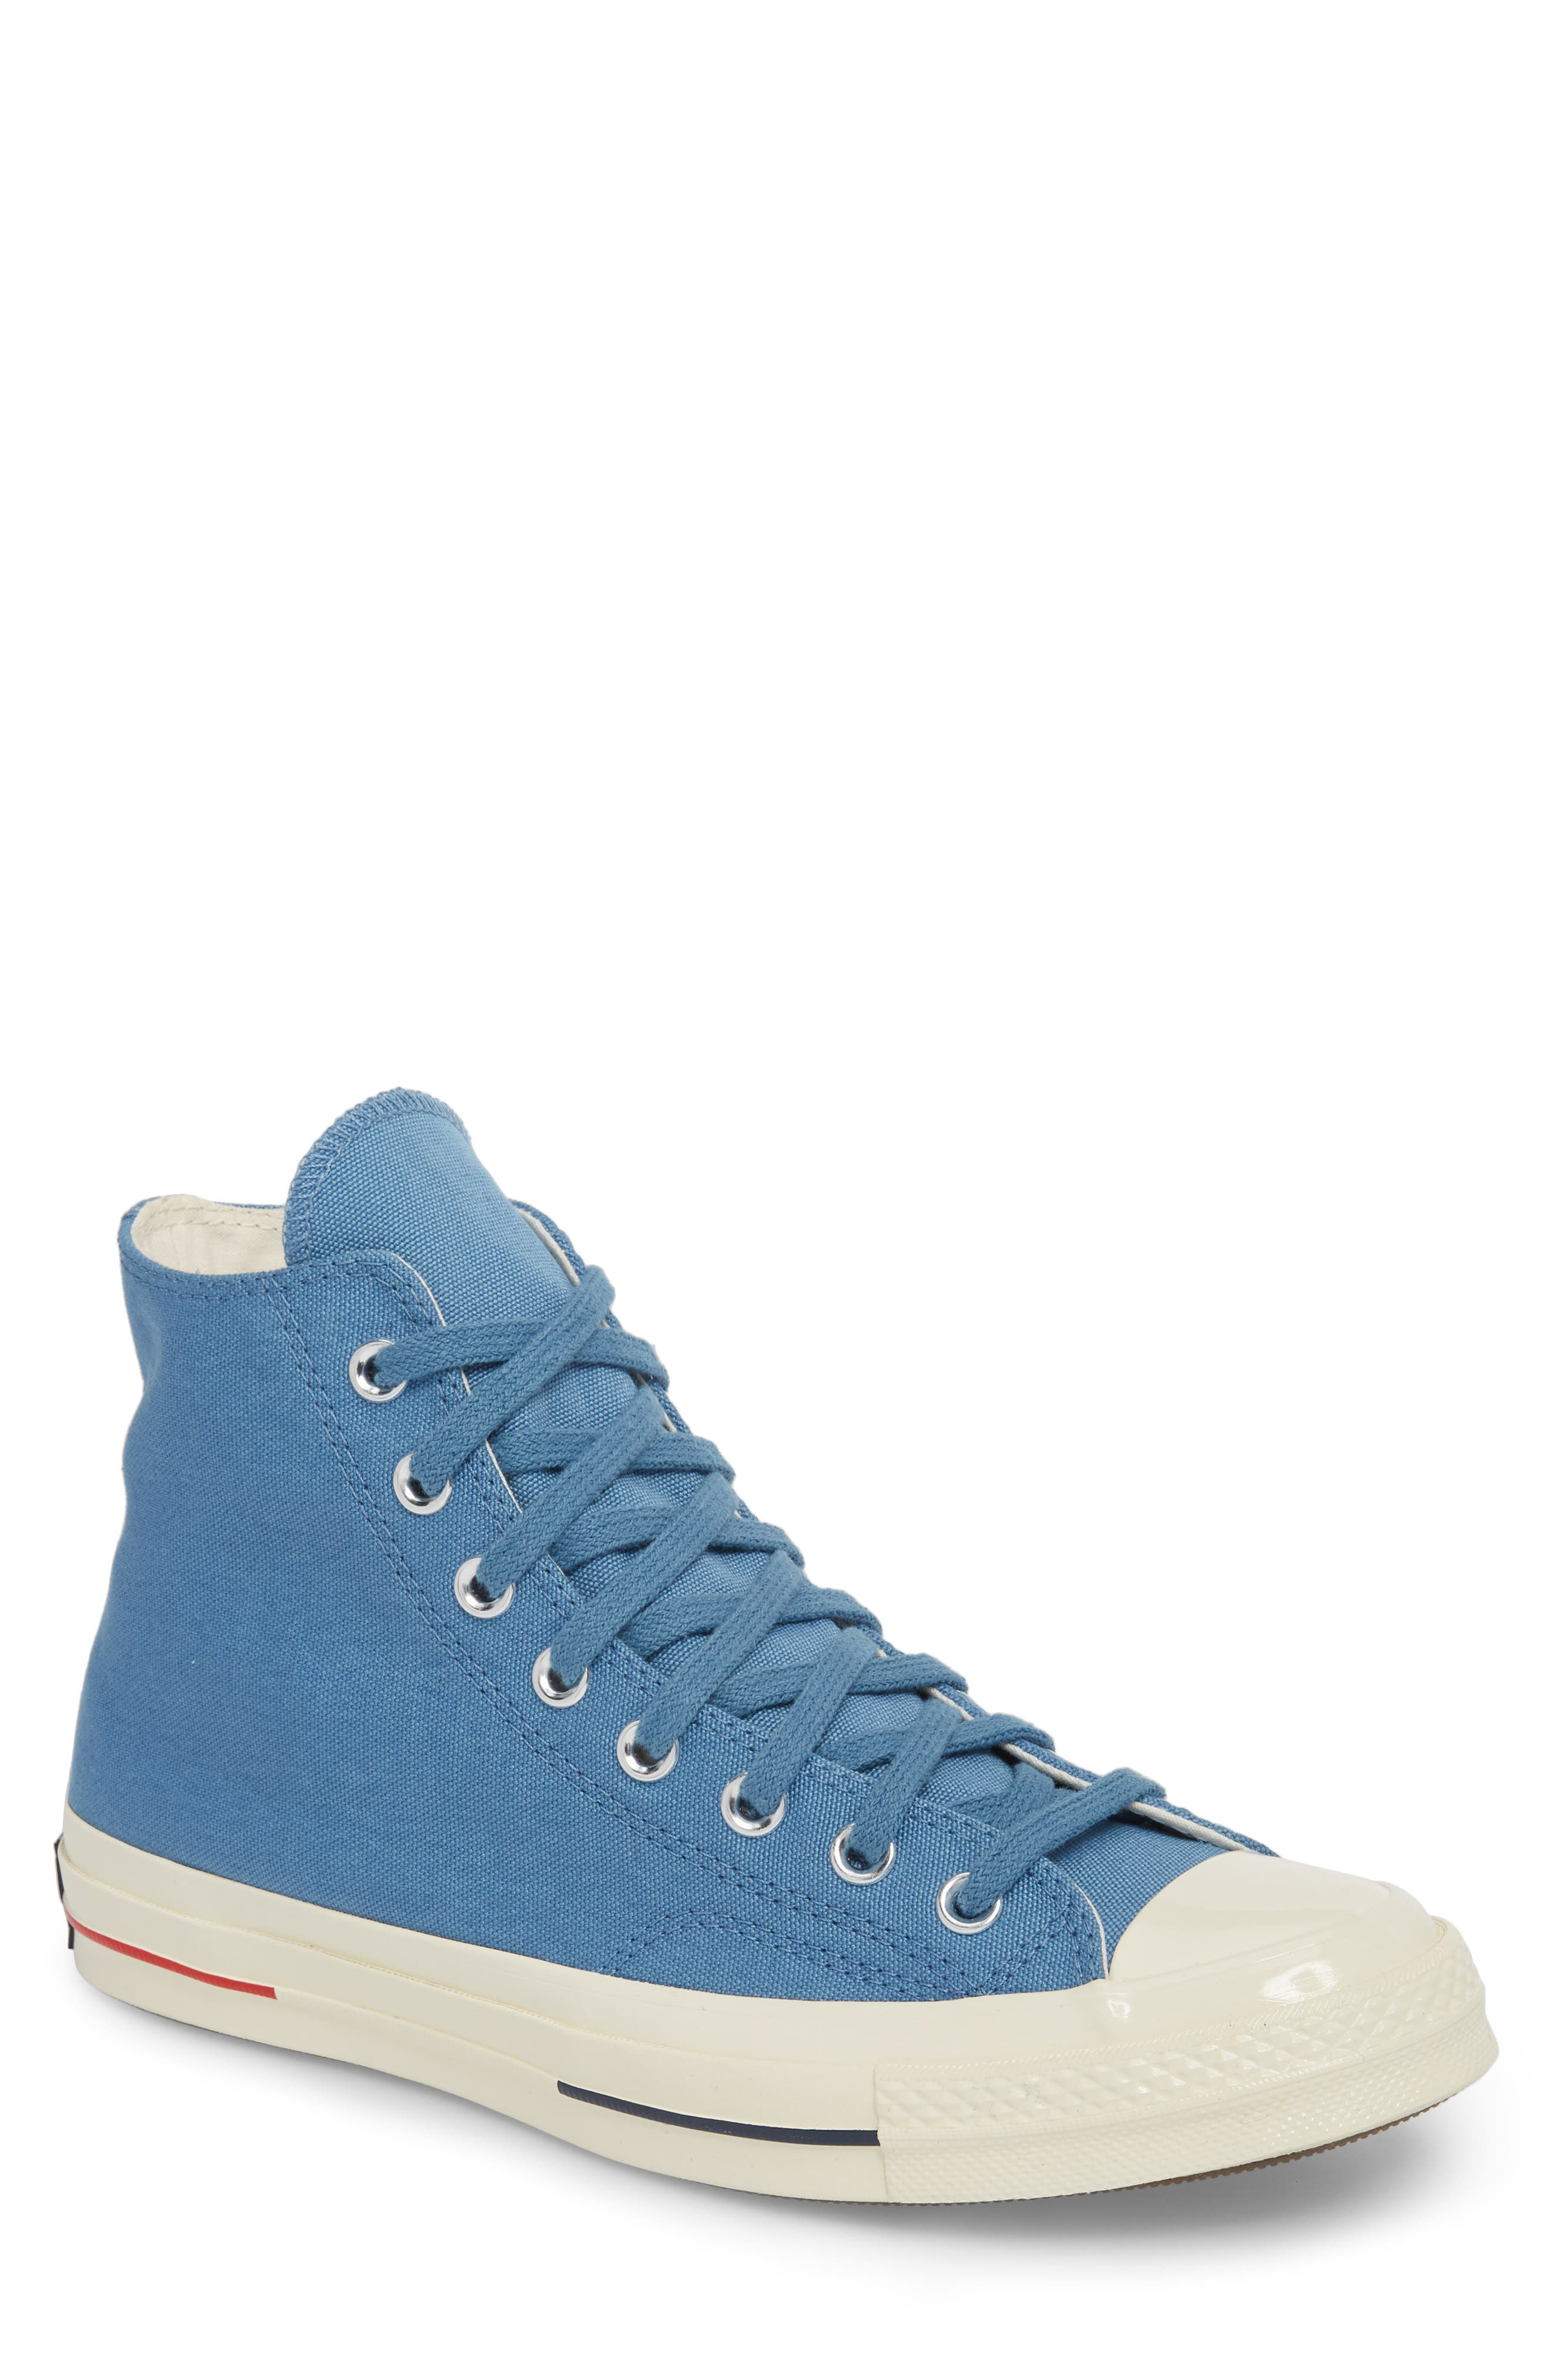 Chuck Taylor<sup>®</sup> All Star<sup>®</sup> '70s Heritage High Top Sneaker,                             Main thumbnail 1, color,                             Aegean Storm